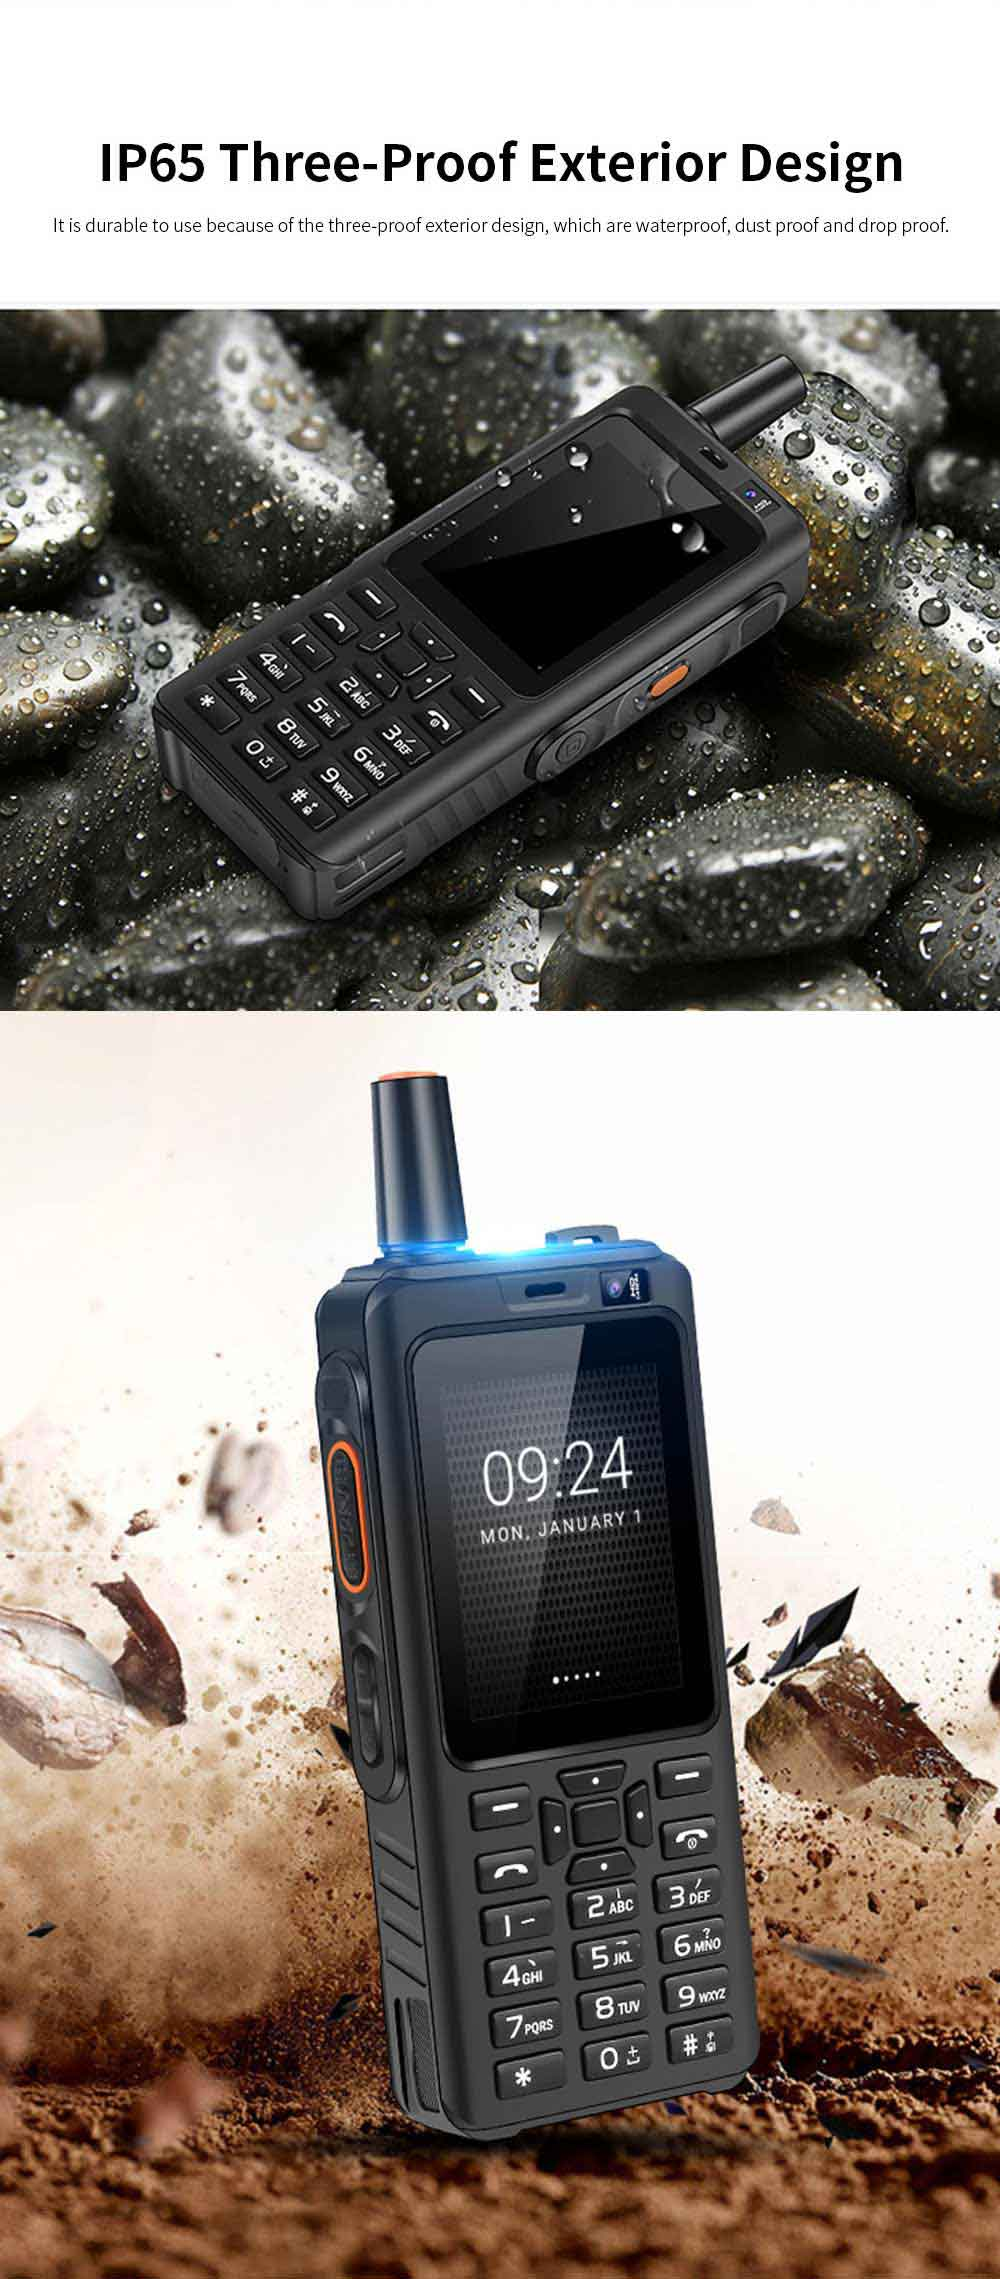 UNIWA F22 Rechargeable 4G Two-Way Radios Walkie Talkies 4000mAh Battery Powered 2.4 Inch Screen GPS Android Smart PPT Intercom Phone 2